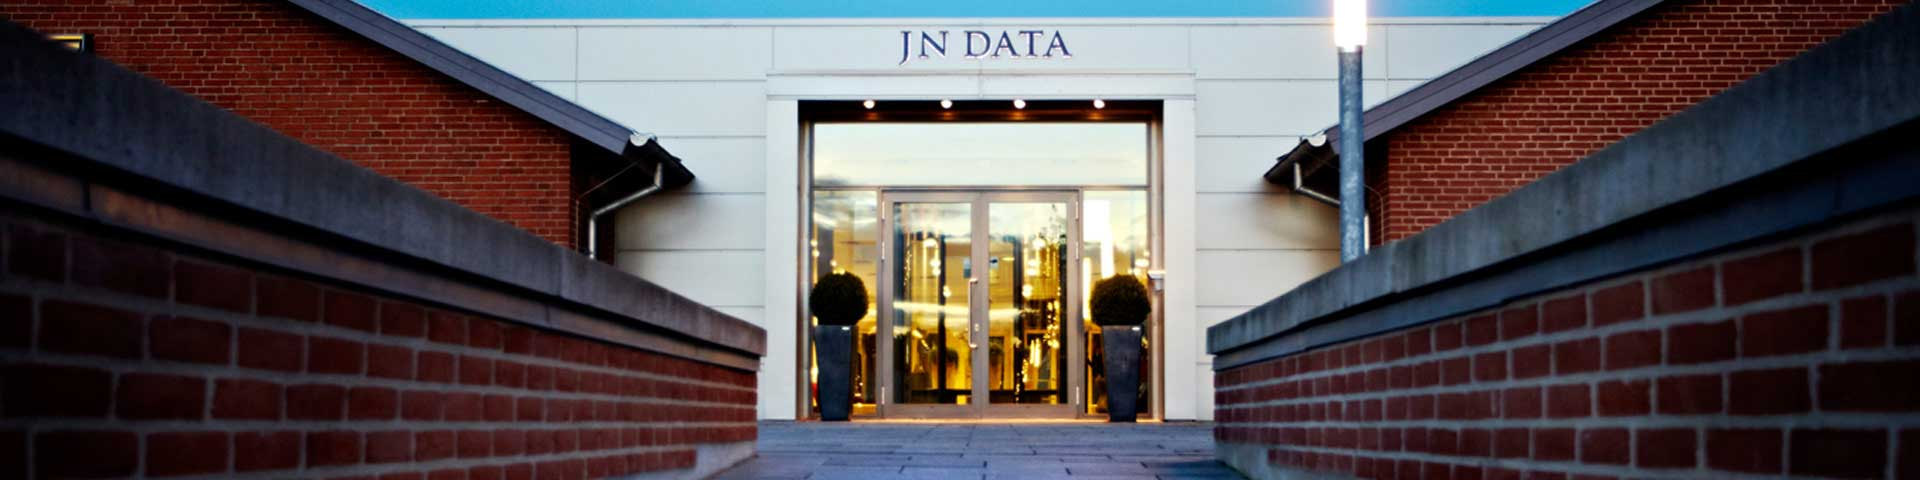 JN Data main entrance